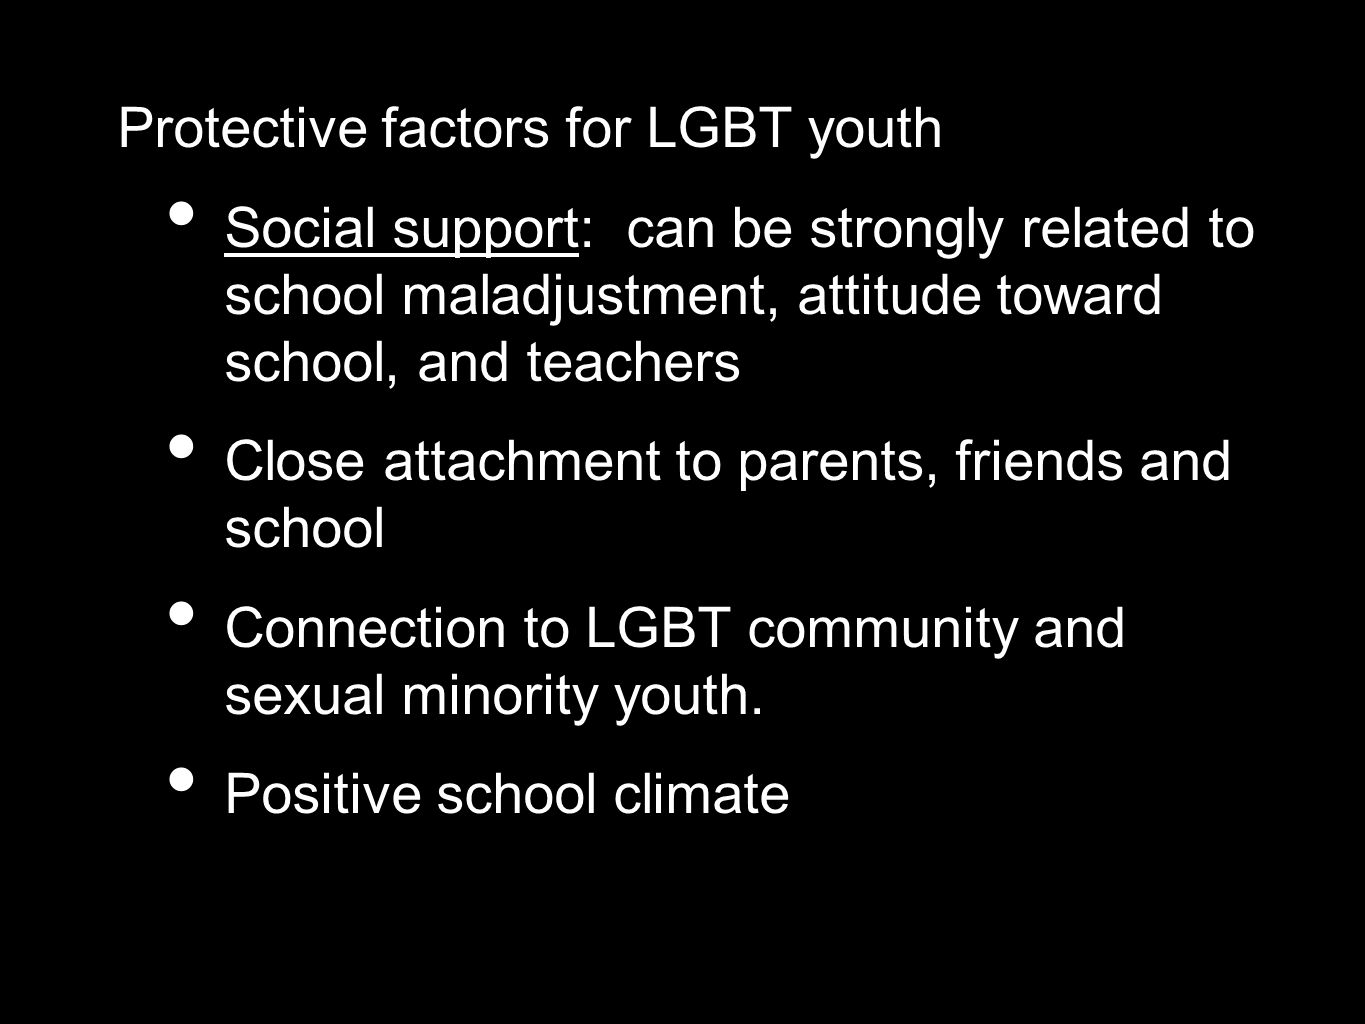 Protective factors for LGBT youth